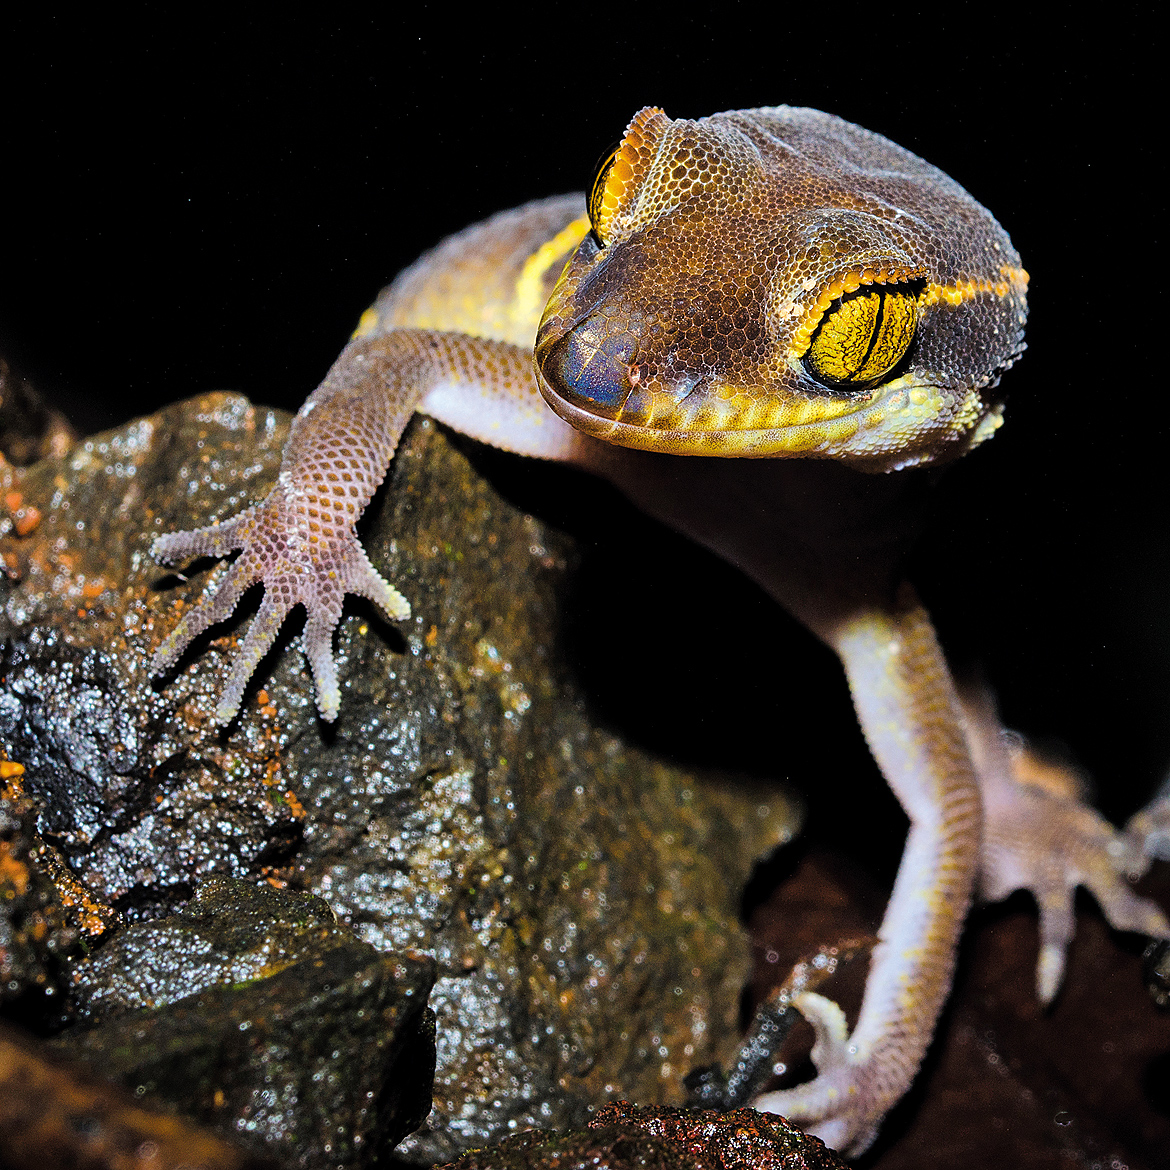 Deccan banded gecko